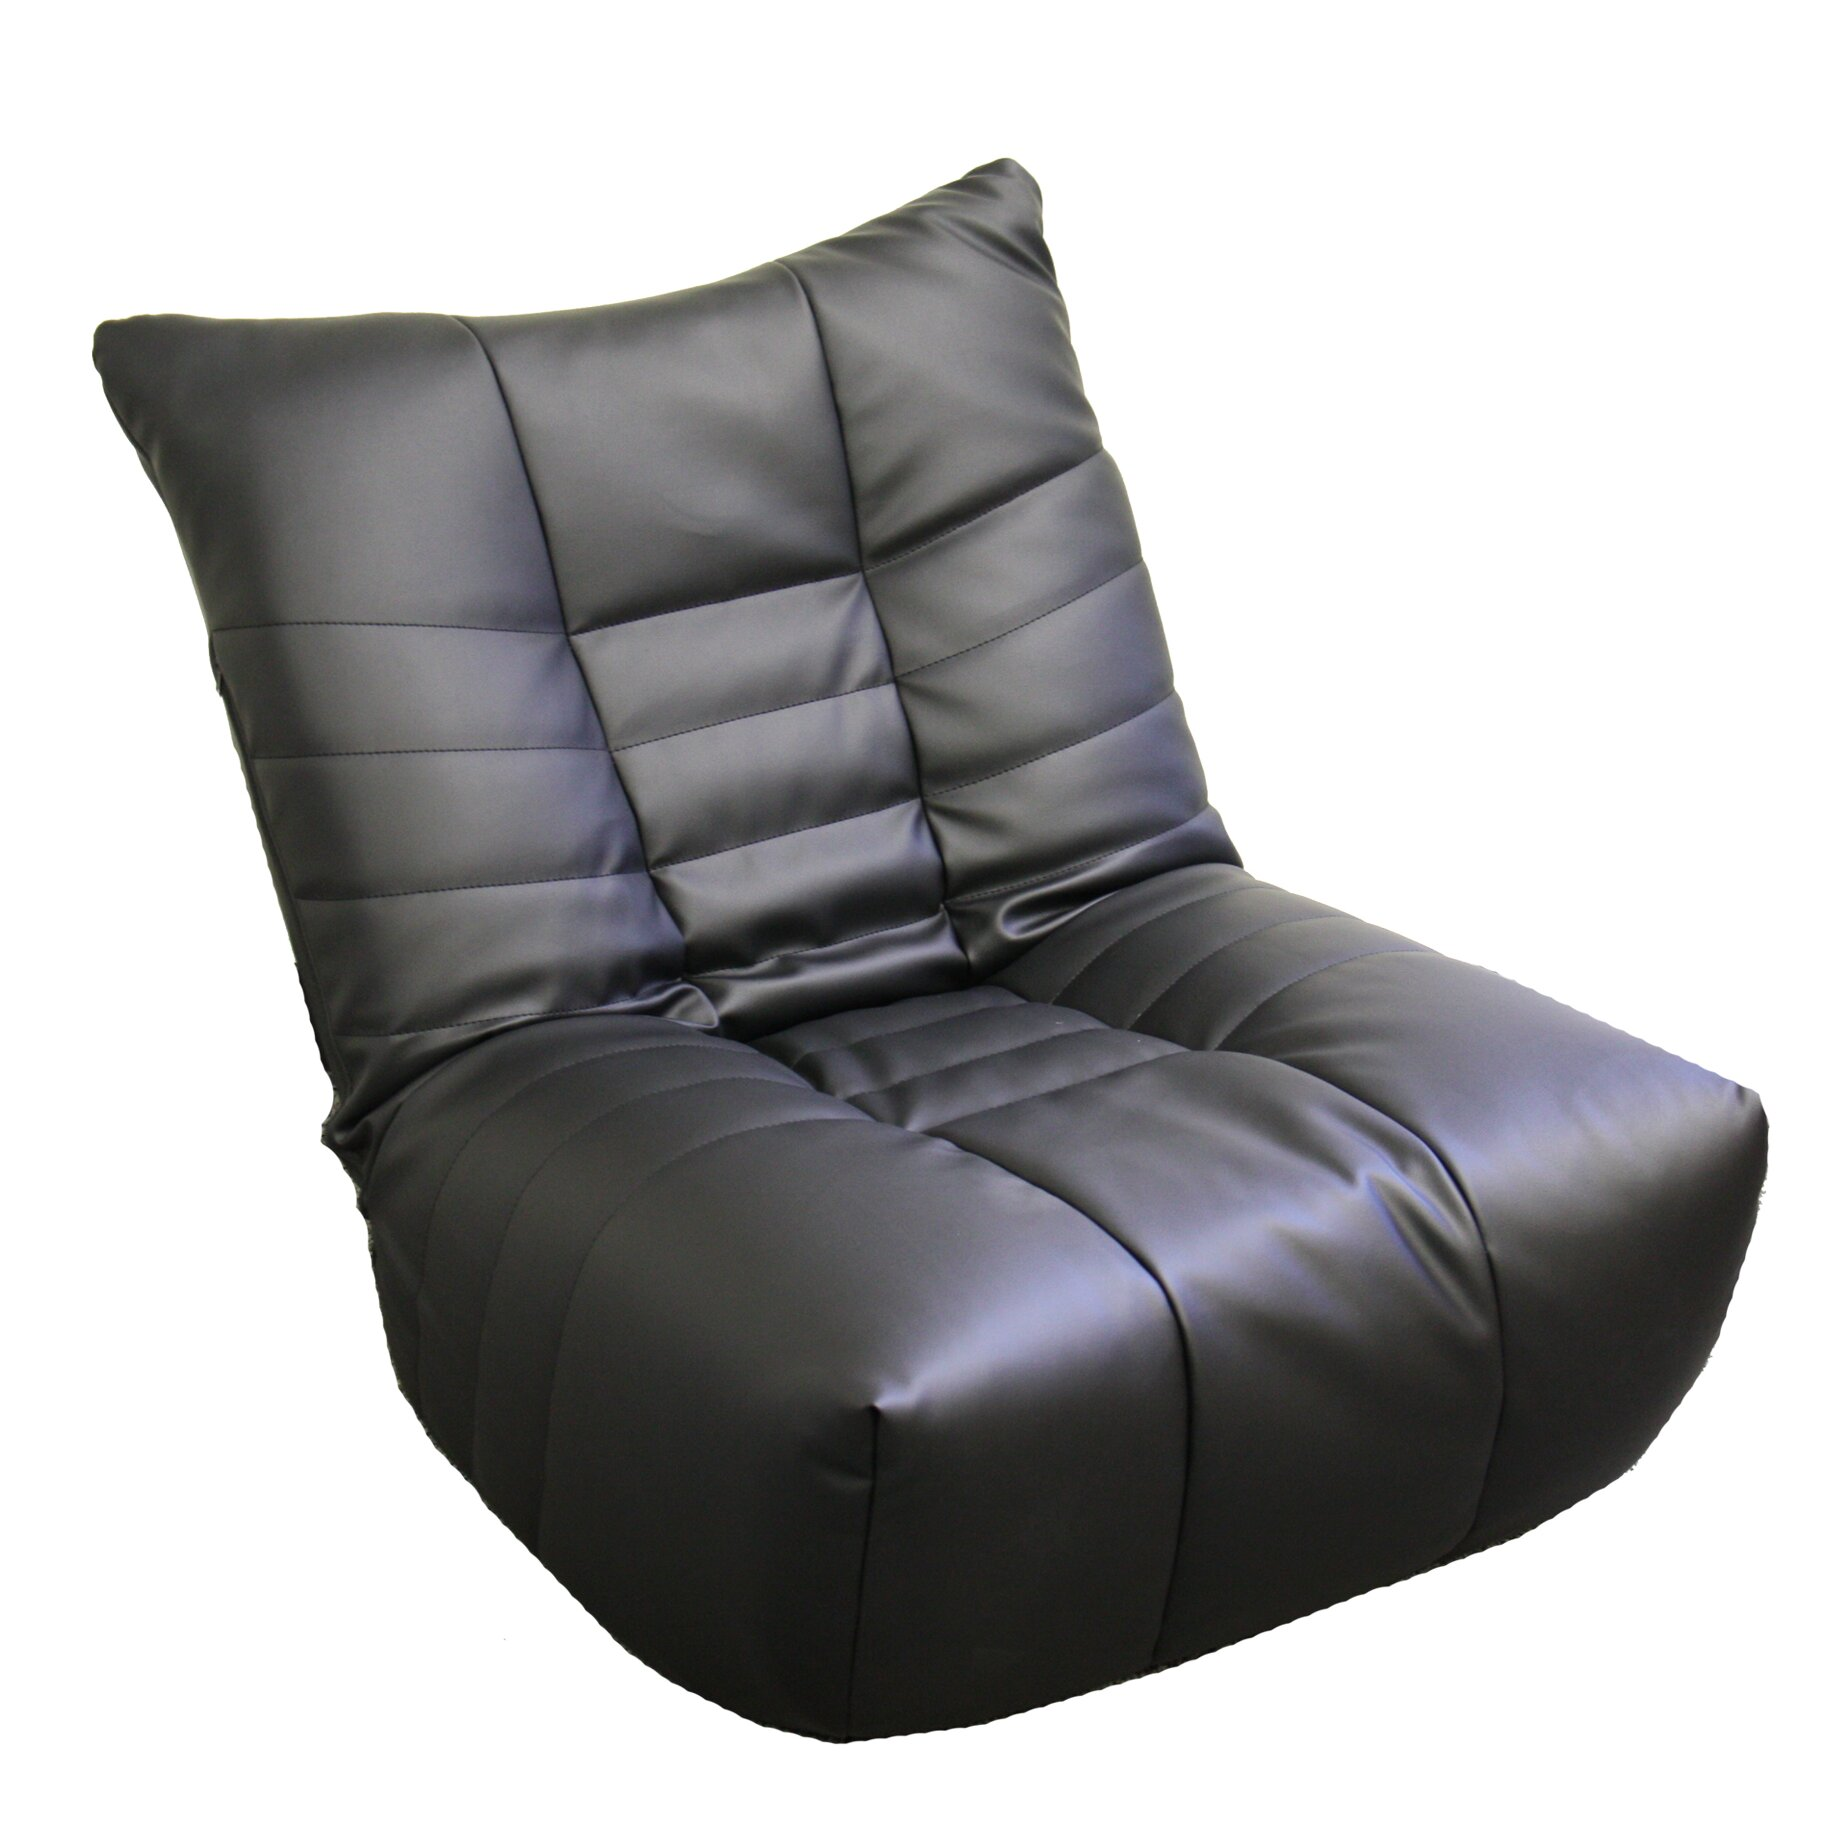 Super comfortable gaming chair - Reclining Floor Game Chair